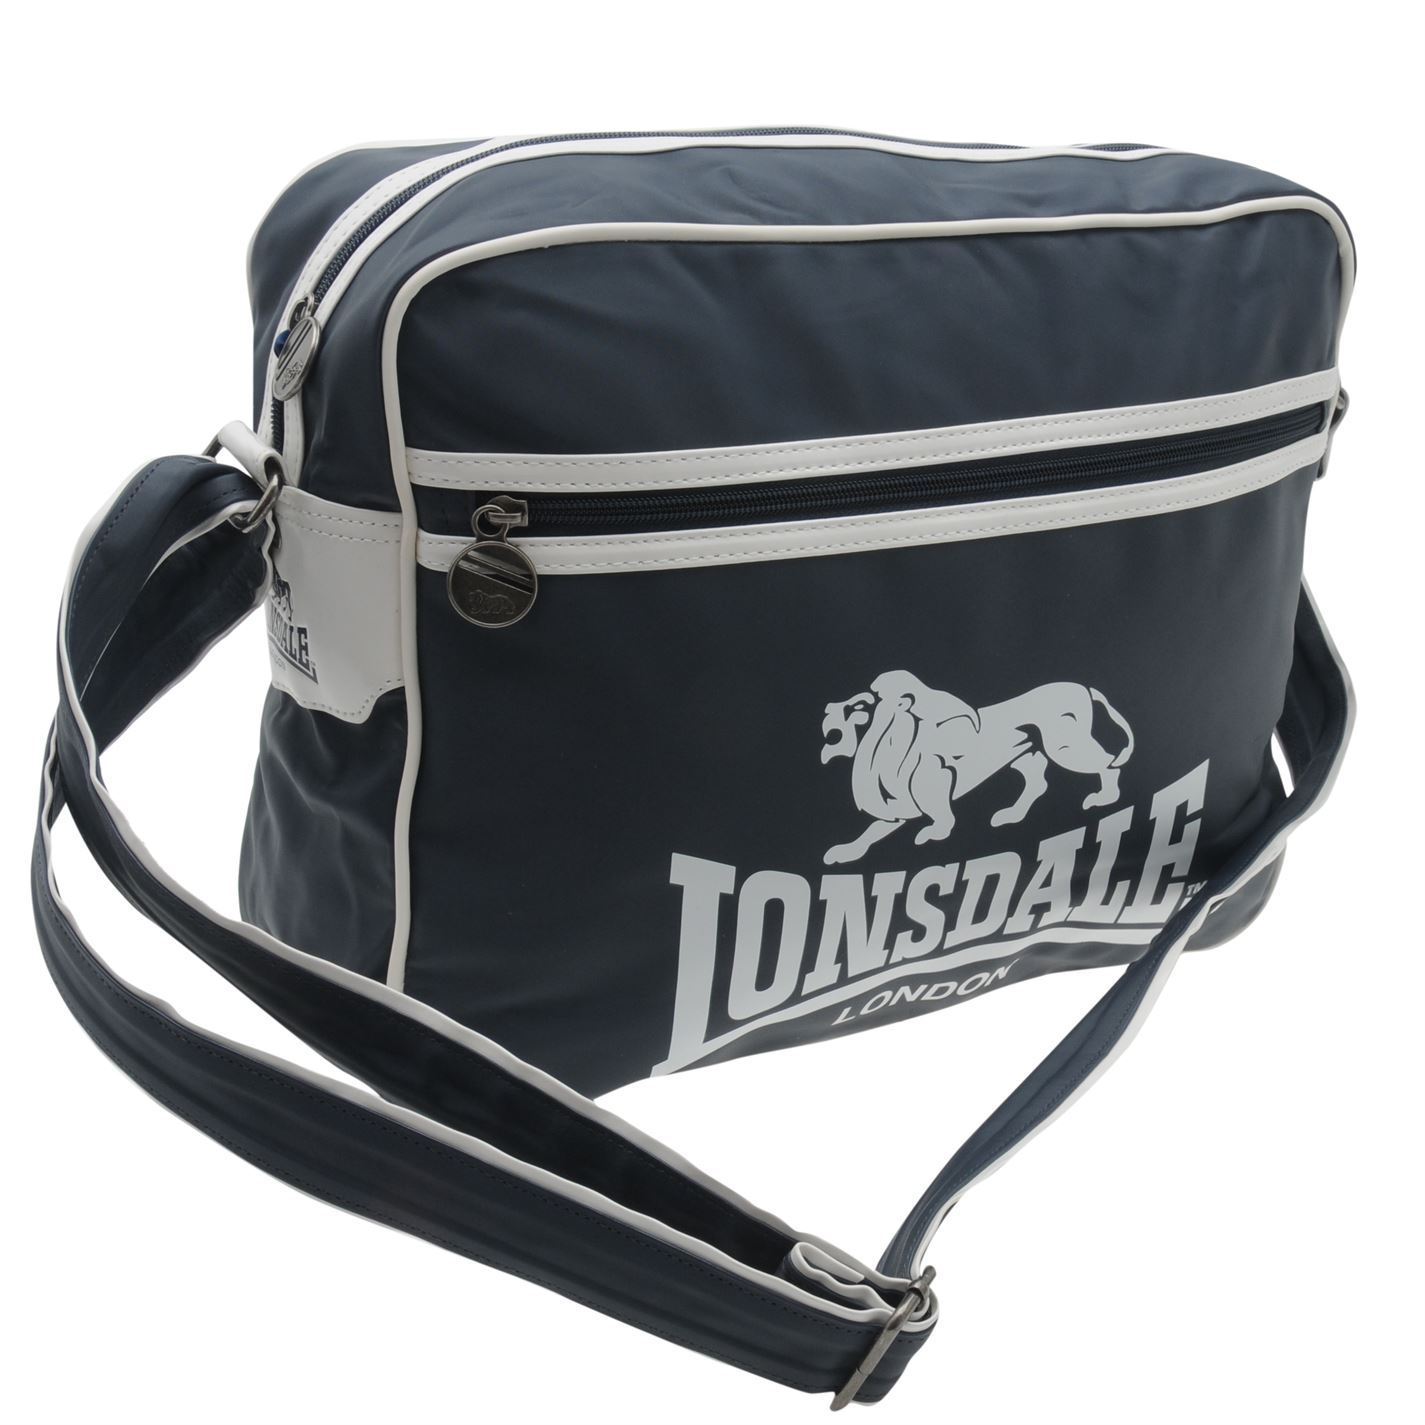 23179204bb Lonsdale London Flight Bags Messenger Bag Shoulder Bag